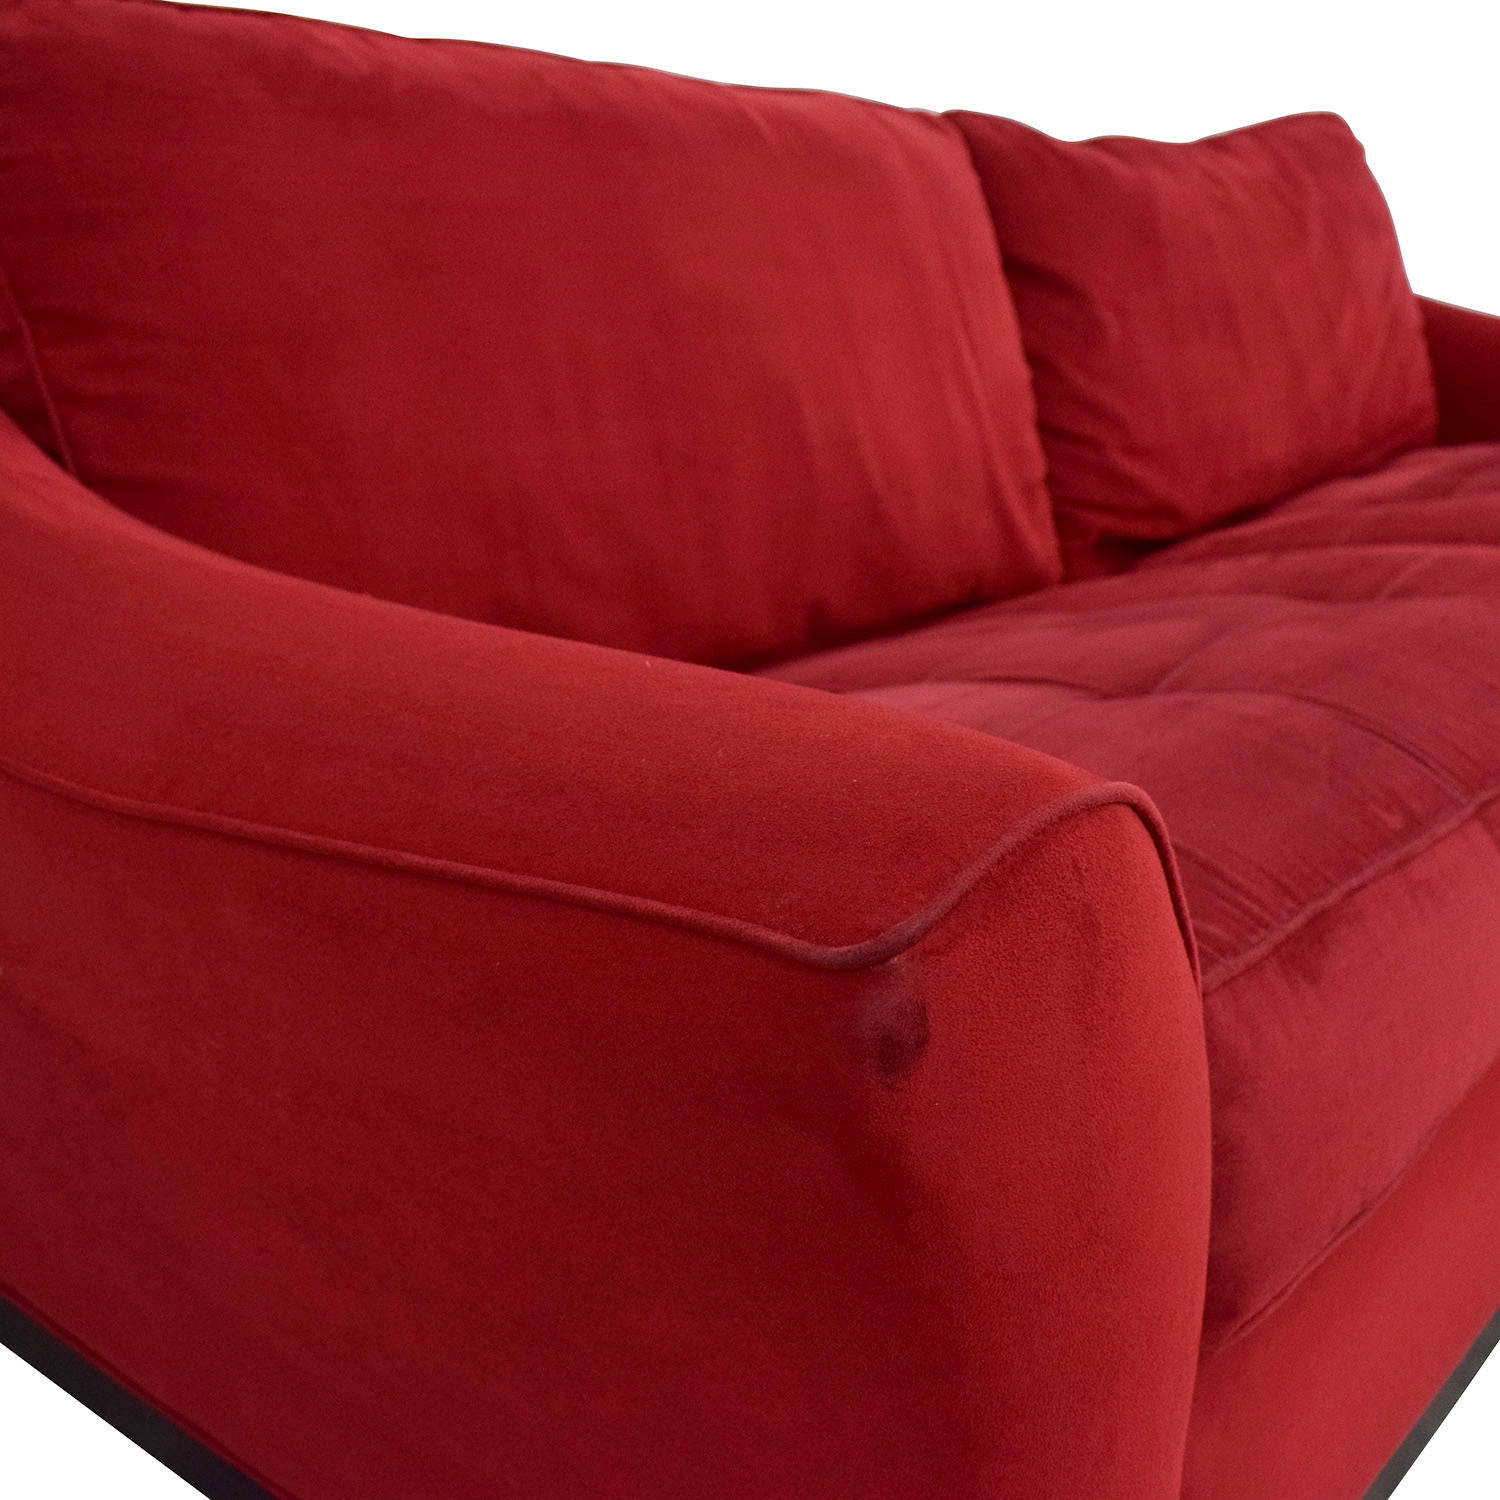 Raymour & Flanigan Raymour & Flanigan Red Sleeper Sofa for sale